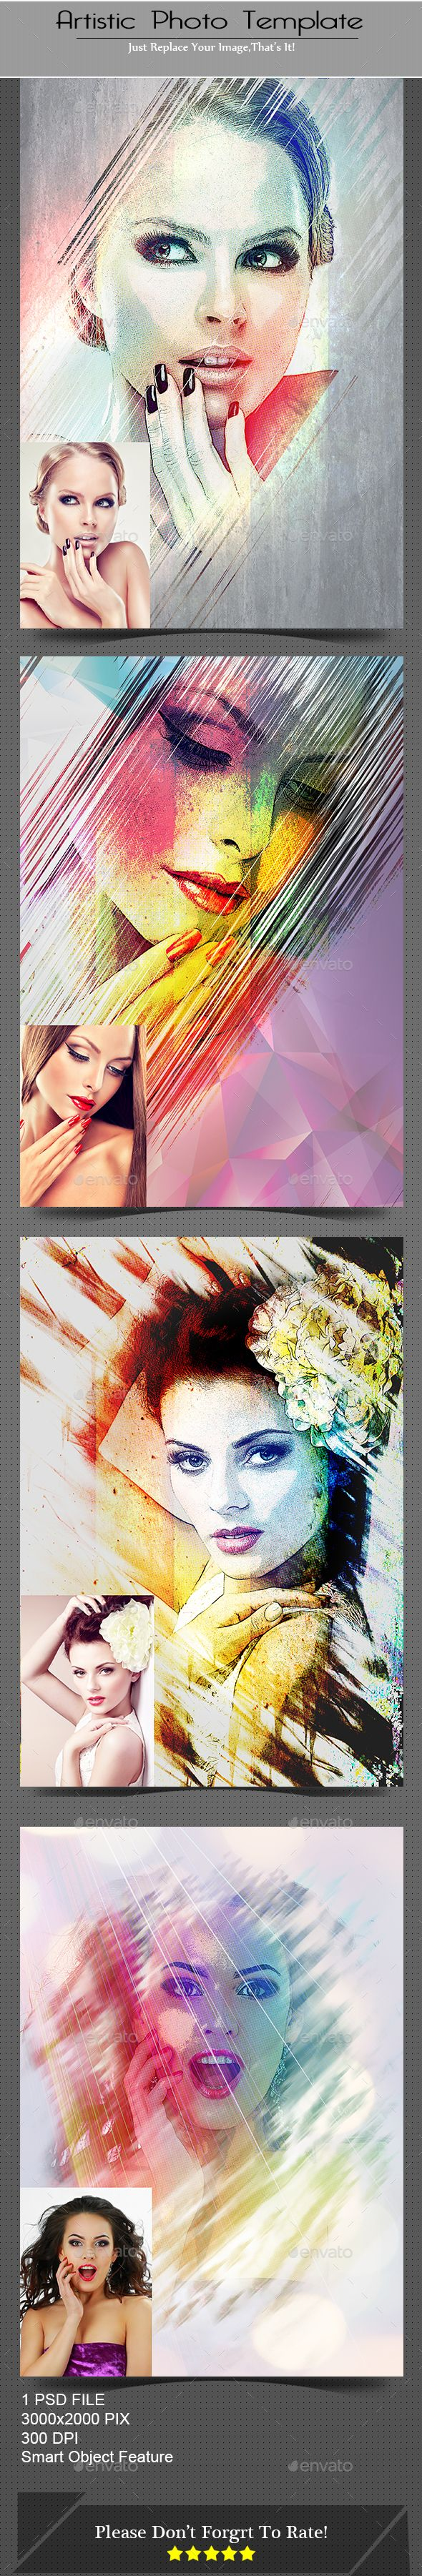 328 best images about Photoshop Brushes and Actions on Pinterest ...